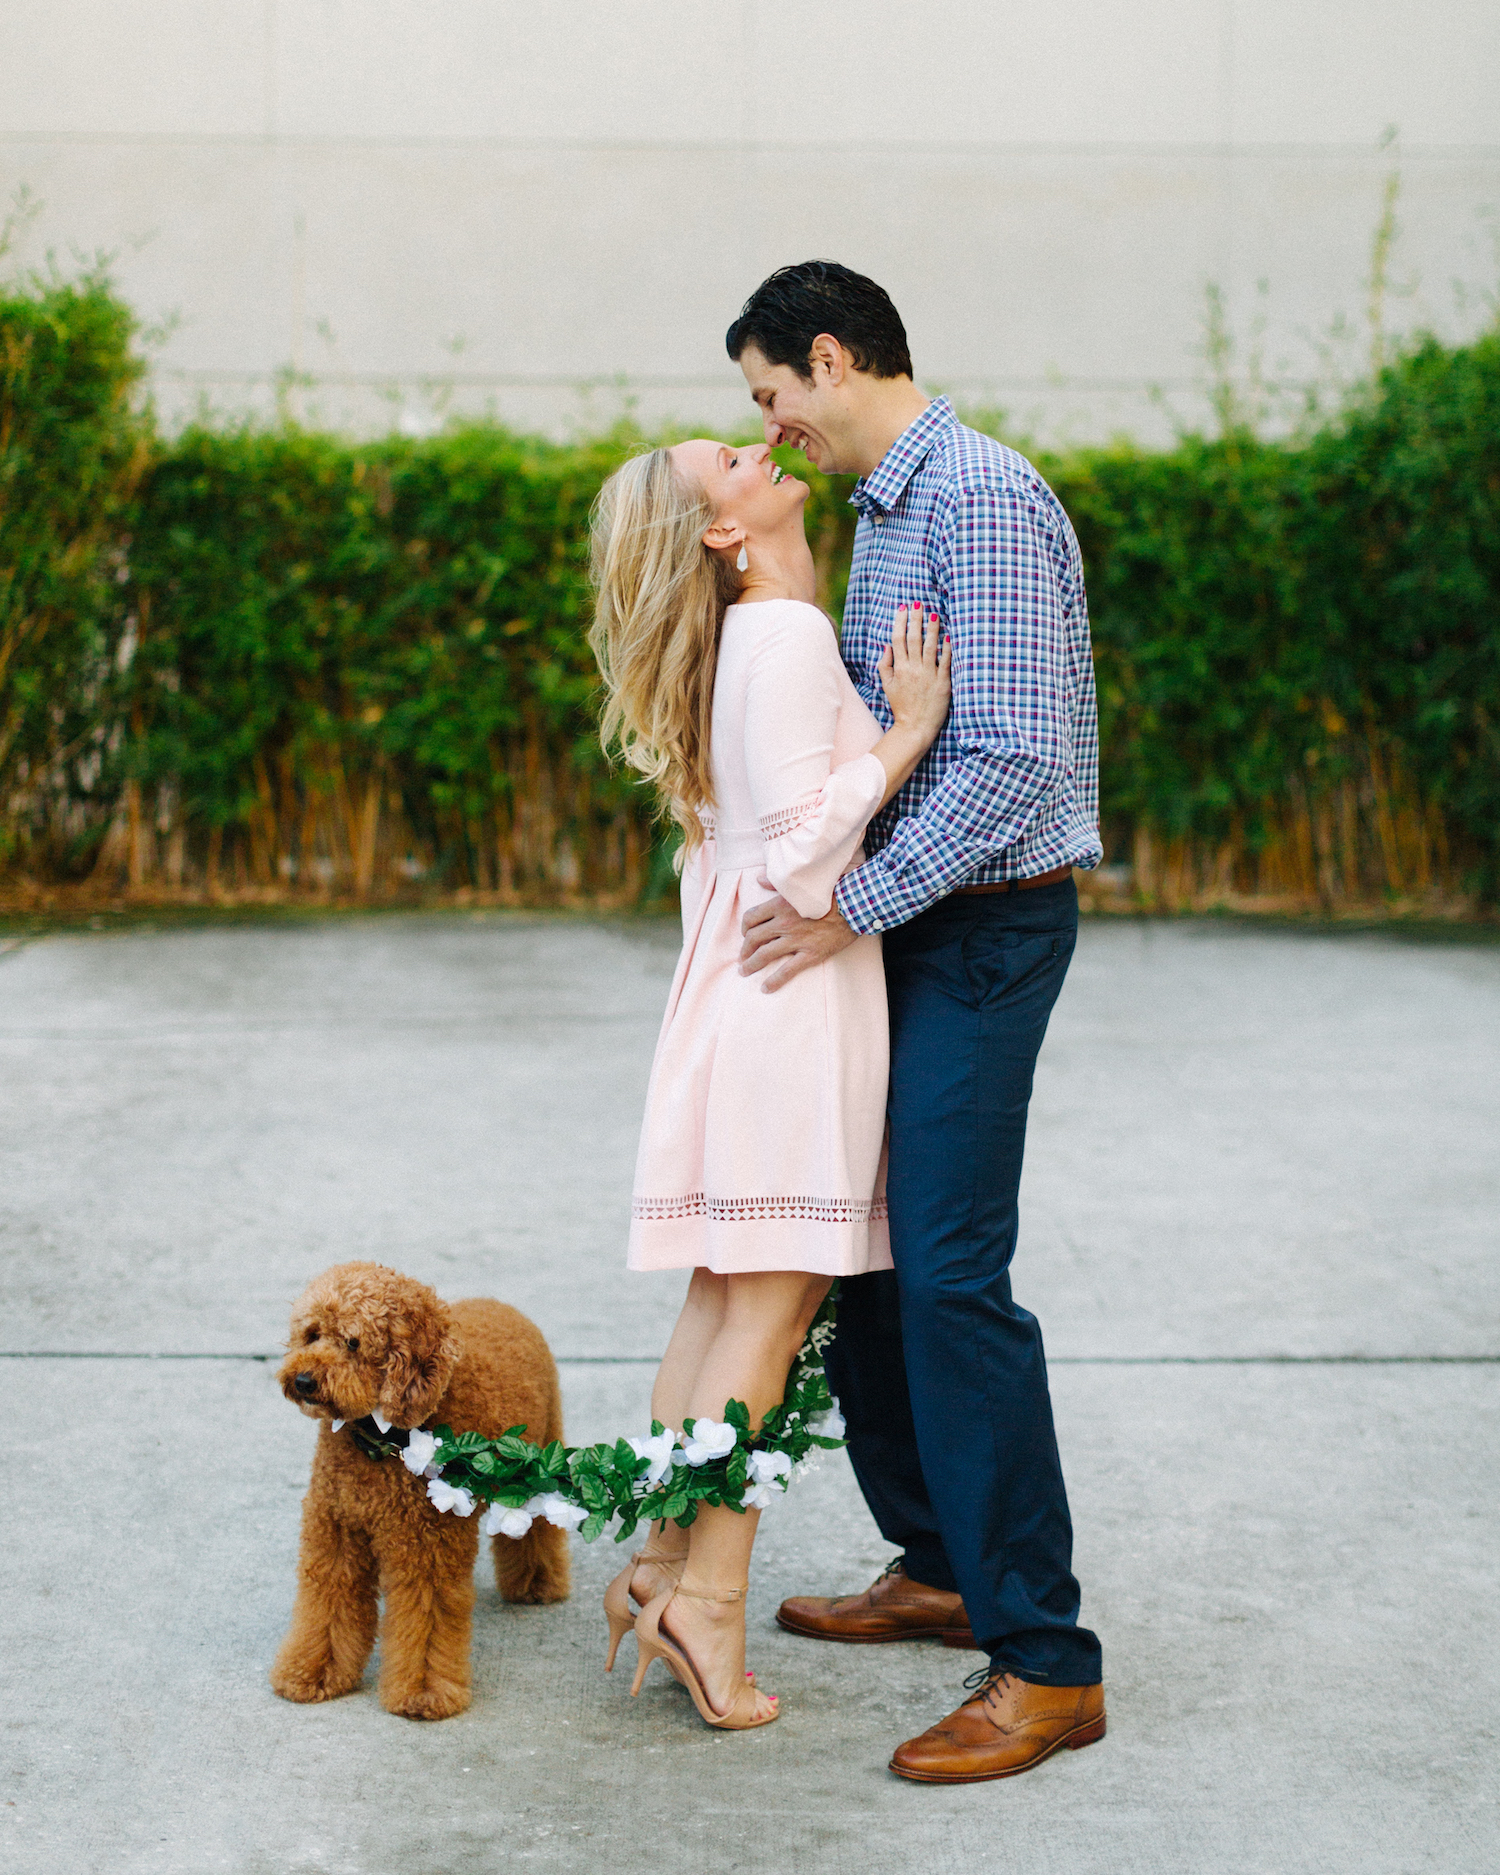 Miguel & Danielle - Engagement - Jake & Katie Photography_021.jpg